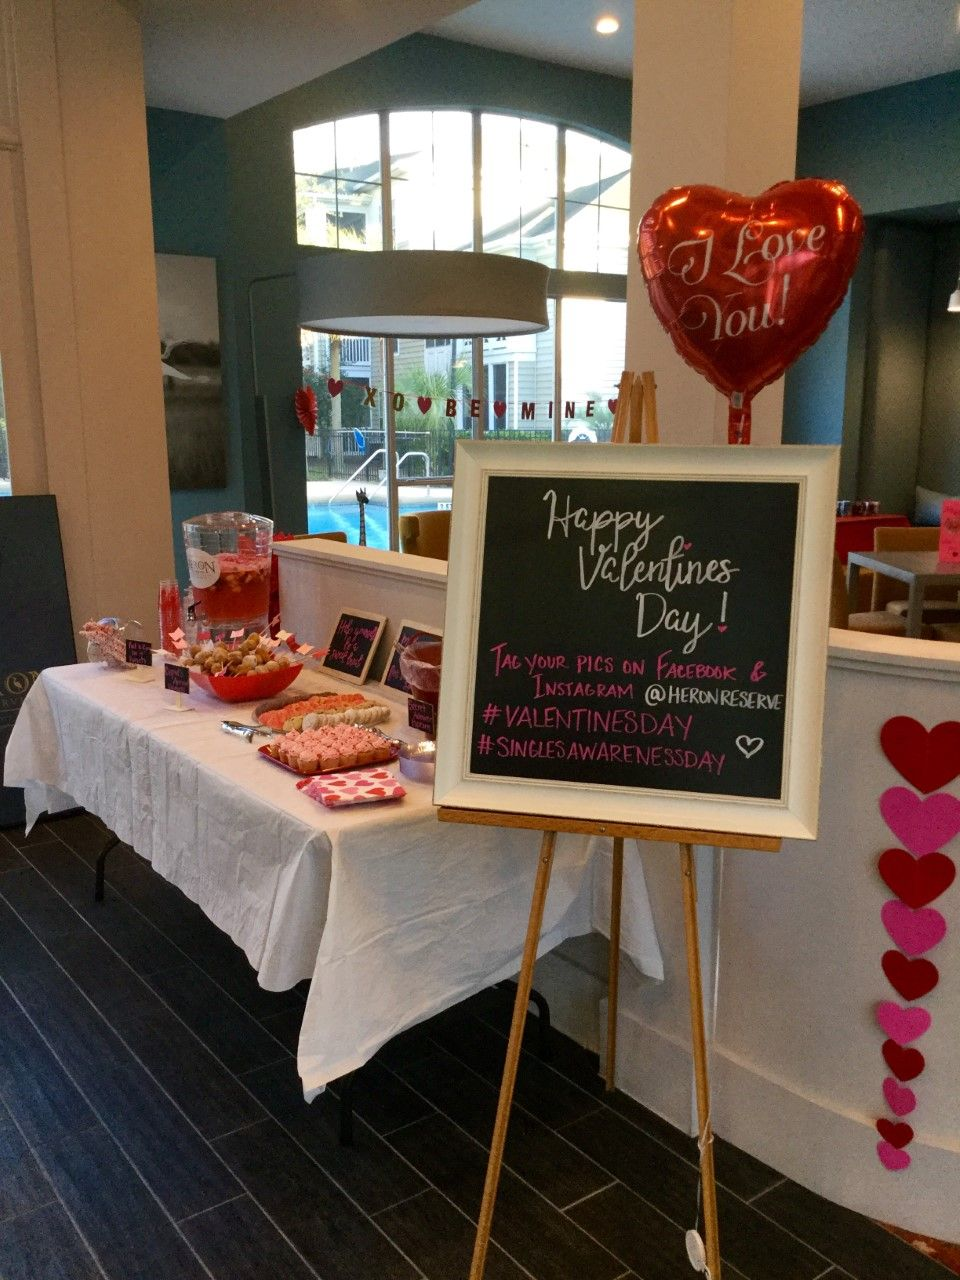 Valentine S Day Social At Apartment Community Treats And Tweets Apartmentliving Communityevents